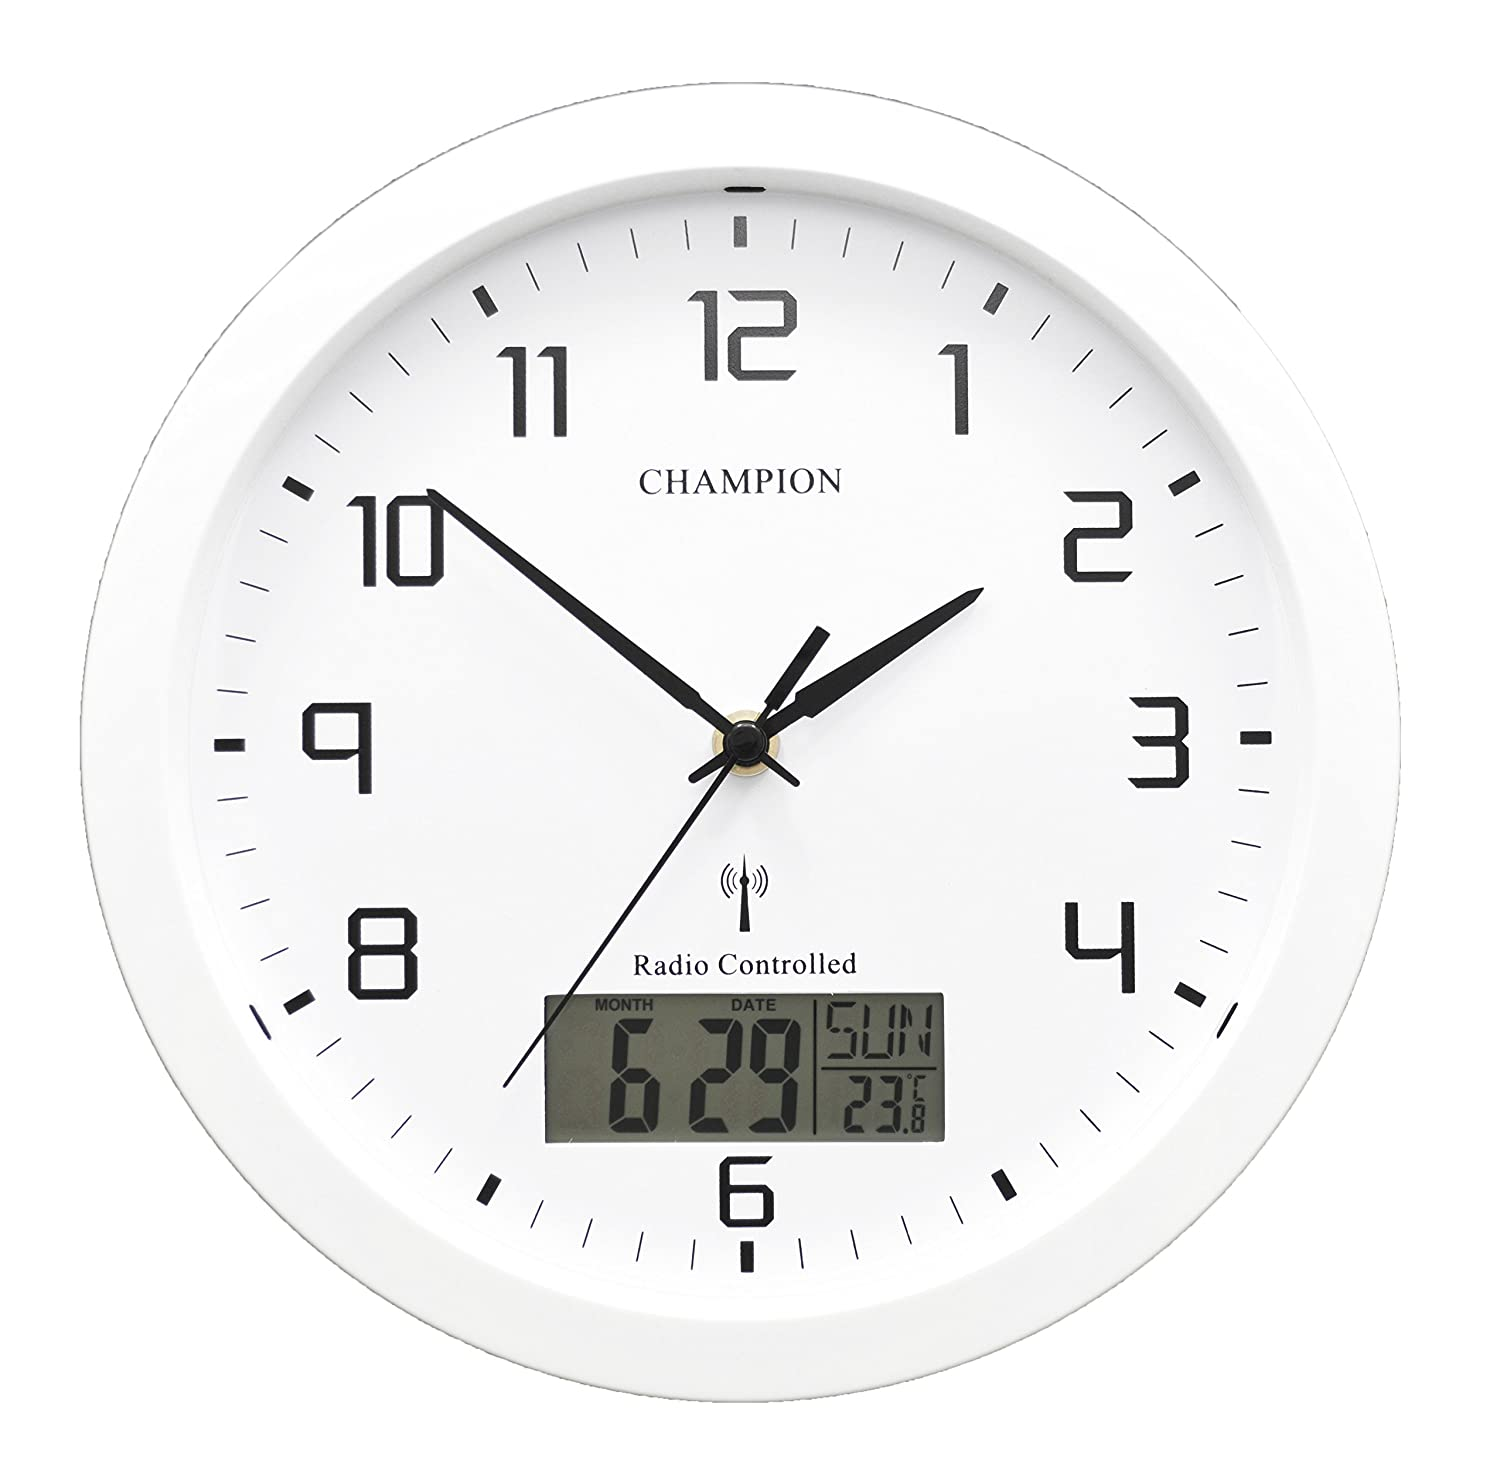 Champion 25cm msf radio controlled quartz wall clock with inset champion 25cm msf radio controlled quartz wall clock with inset lcd display with daydate white amazon kitchen home amipublicfo Image collections